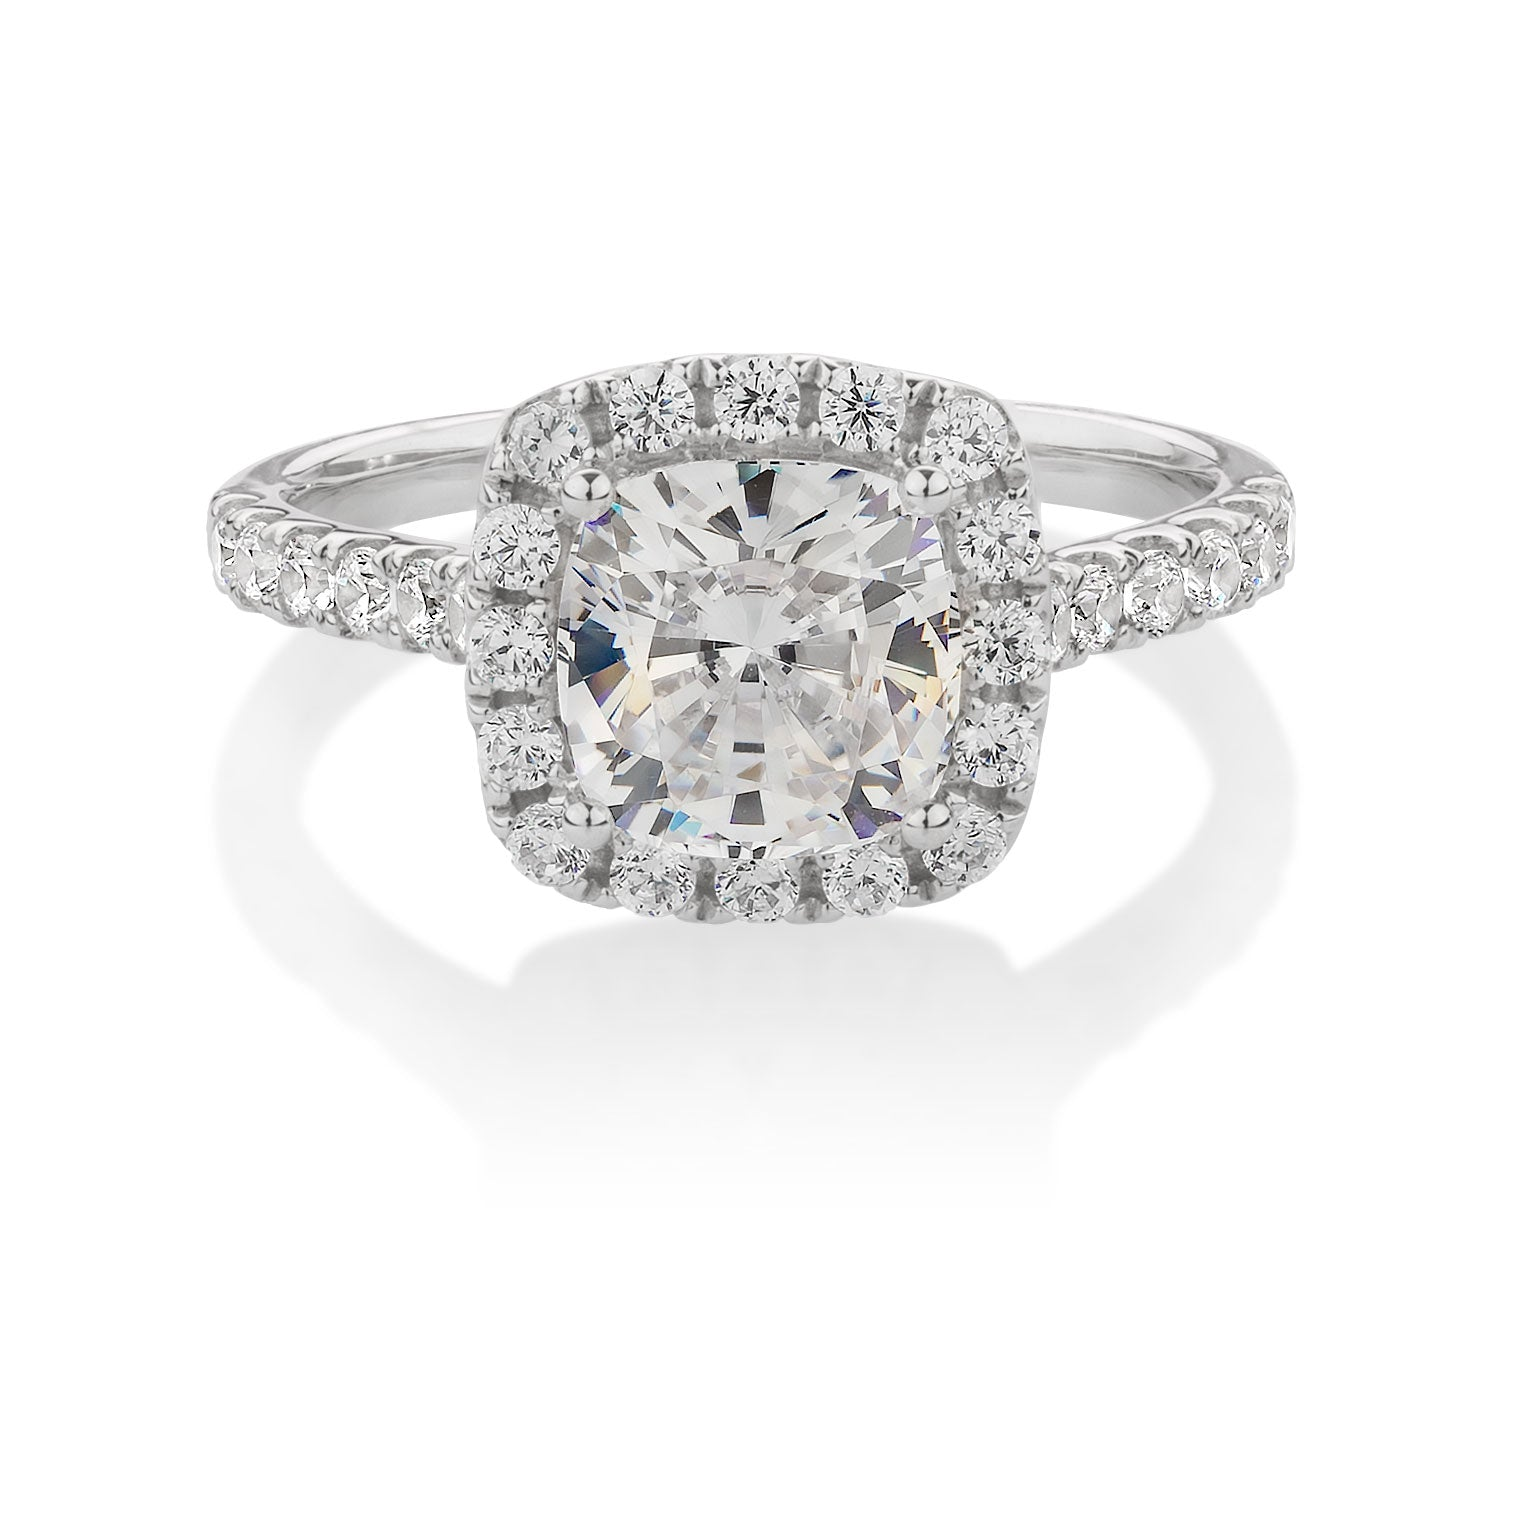 Large Cushion Cut Halo Engagement Ring in 10ct White Gold